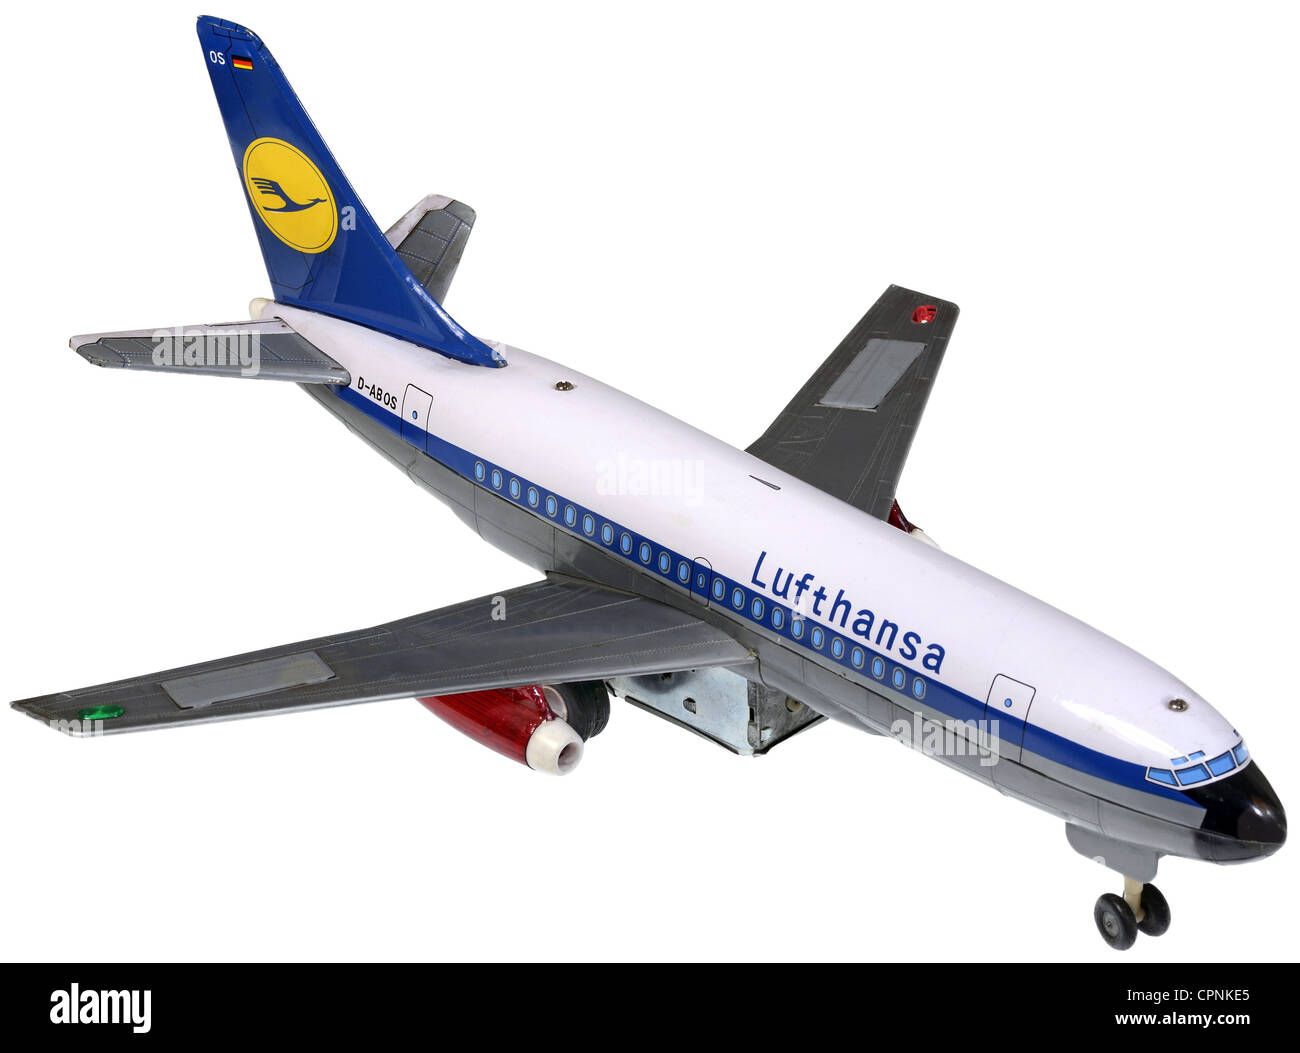 toys model aircraft lufthansa boeing  producer modern  - stock photo  toys model aircraft lufthansa boeing  producer moderntoys japan circa  model plane model aircraft model pl